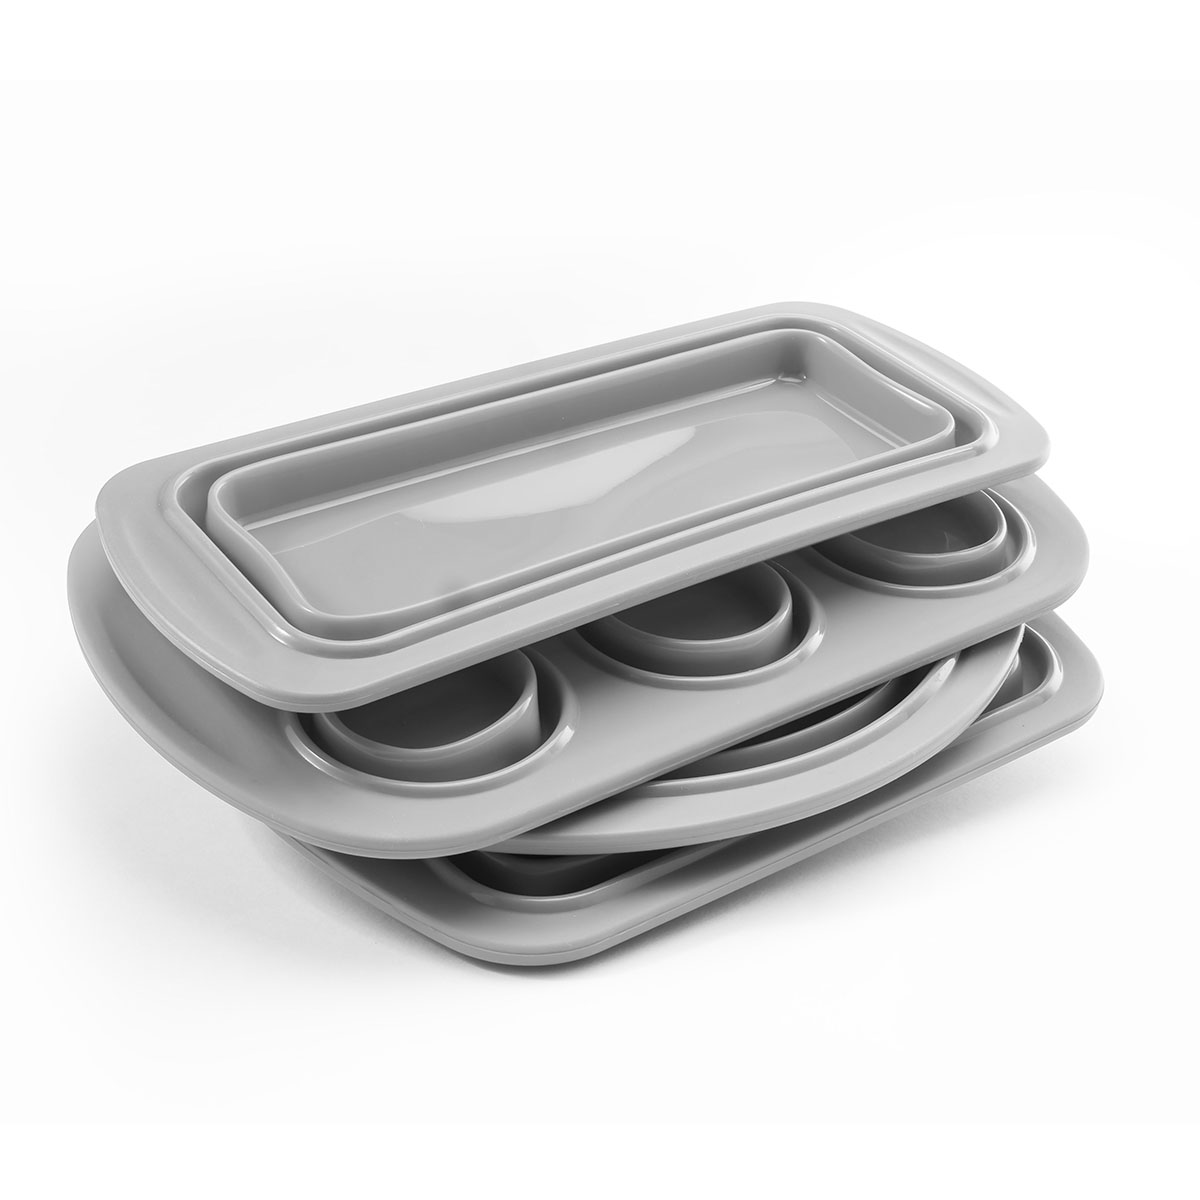 Cook-039-s-Companion-4-Piece-Collapsible-Silicone-Bakeware-Set thumbnail 4